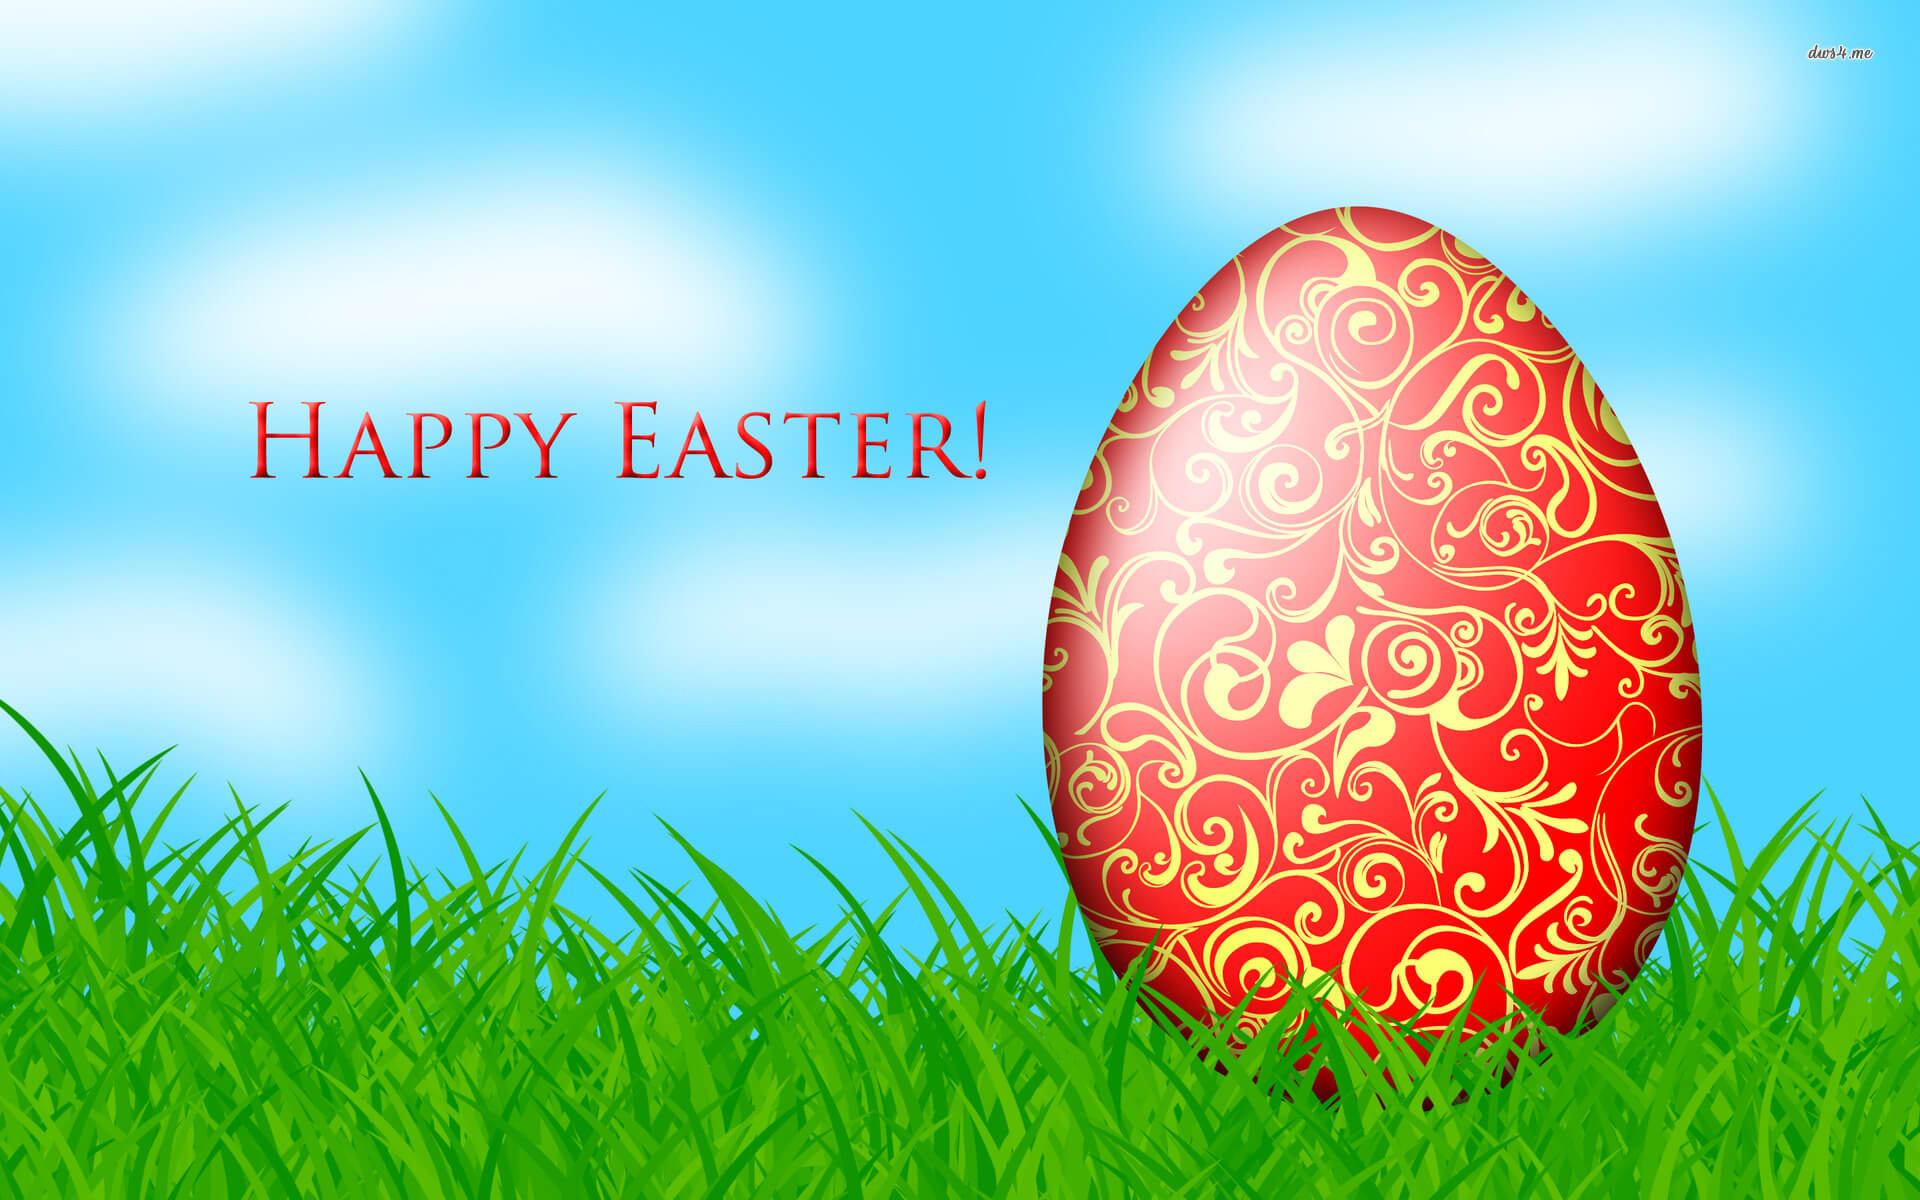 happy easter egg art wallpaper hd background